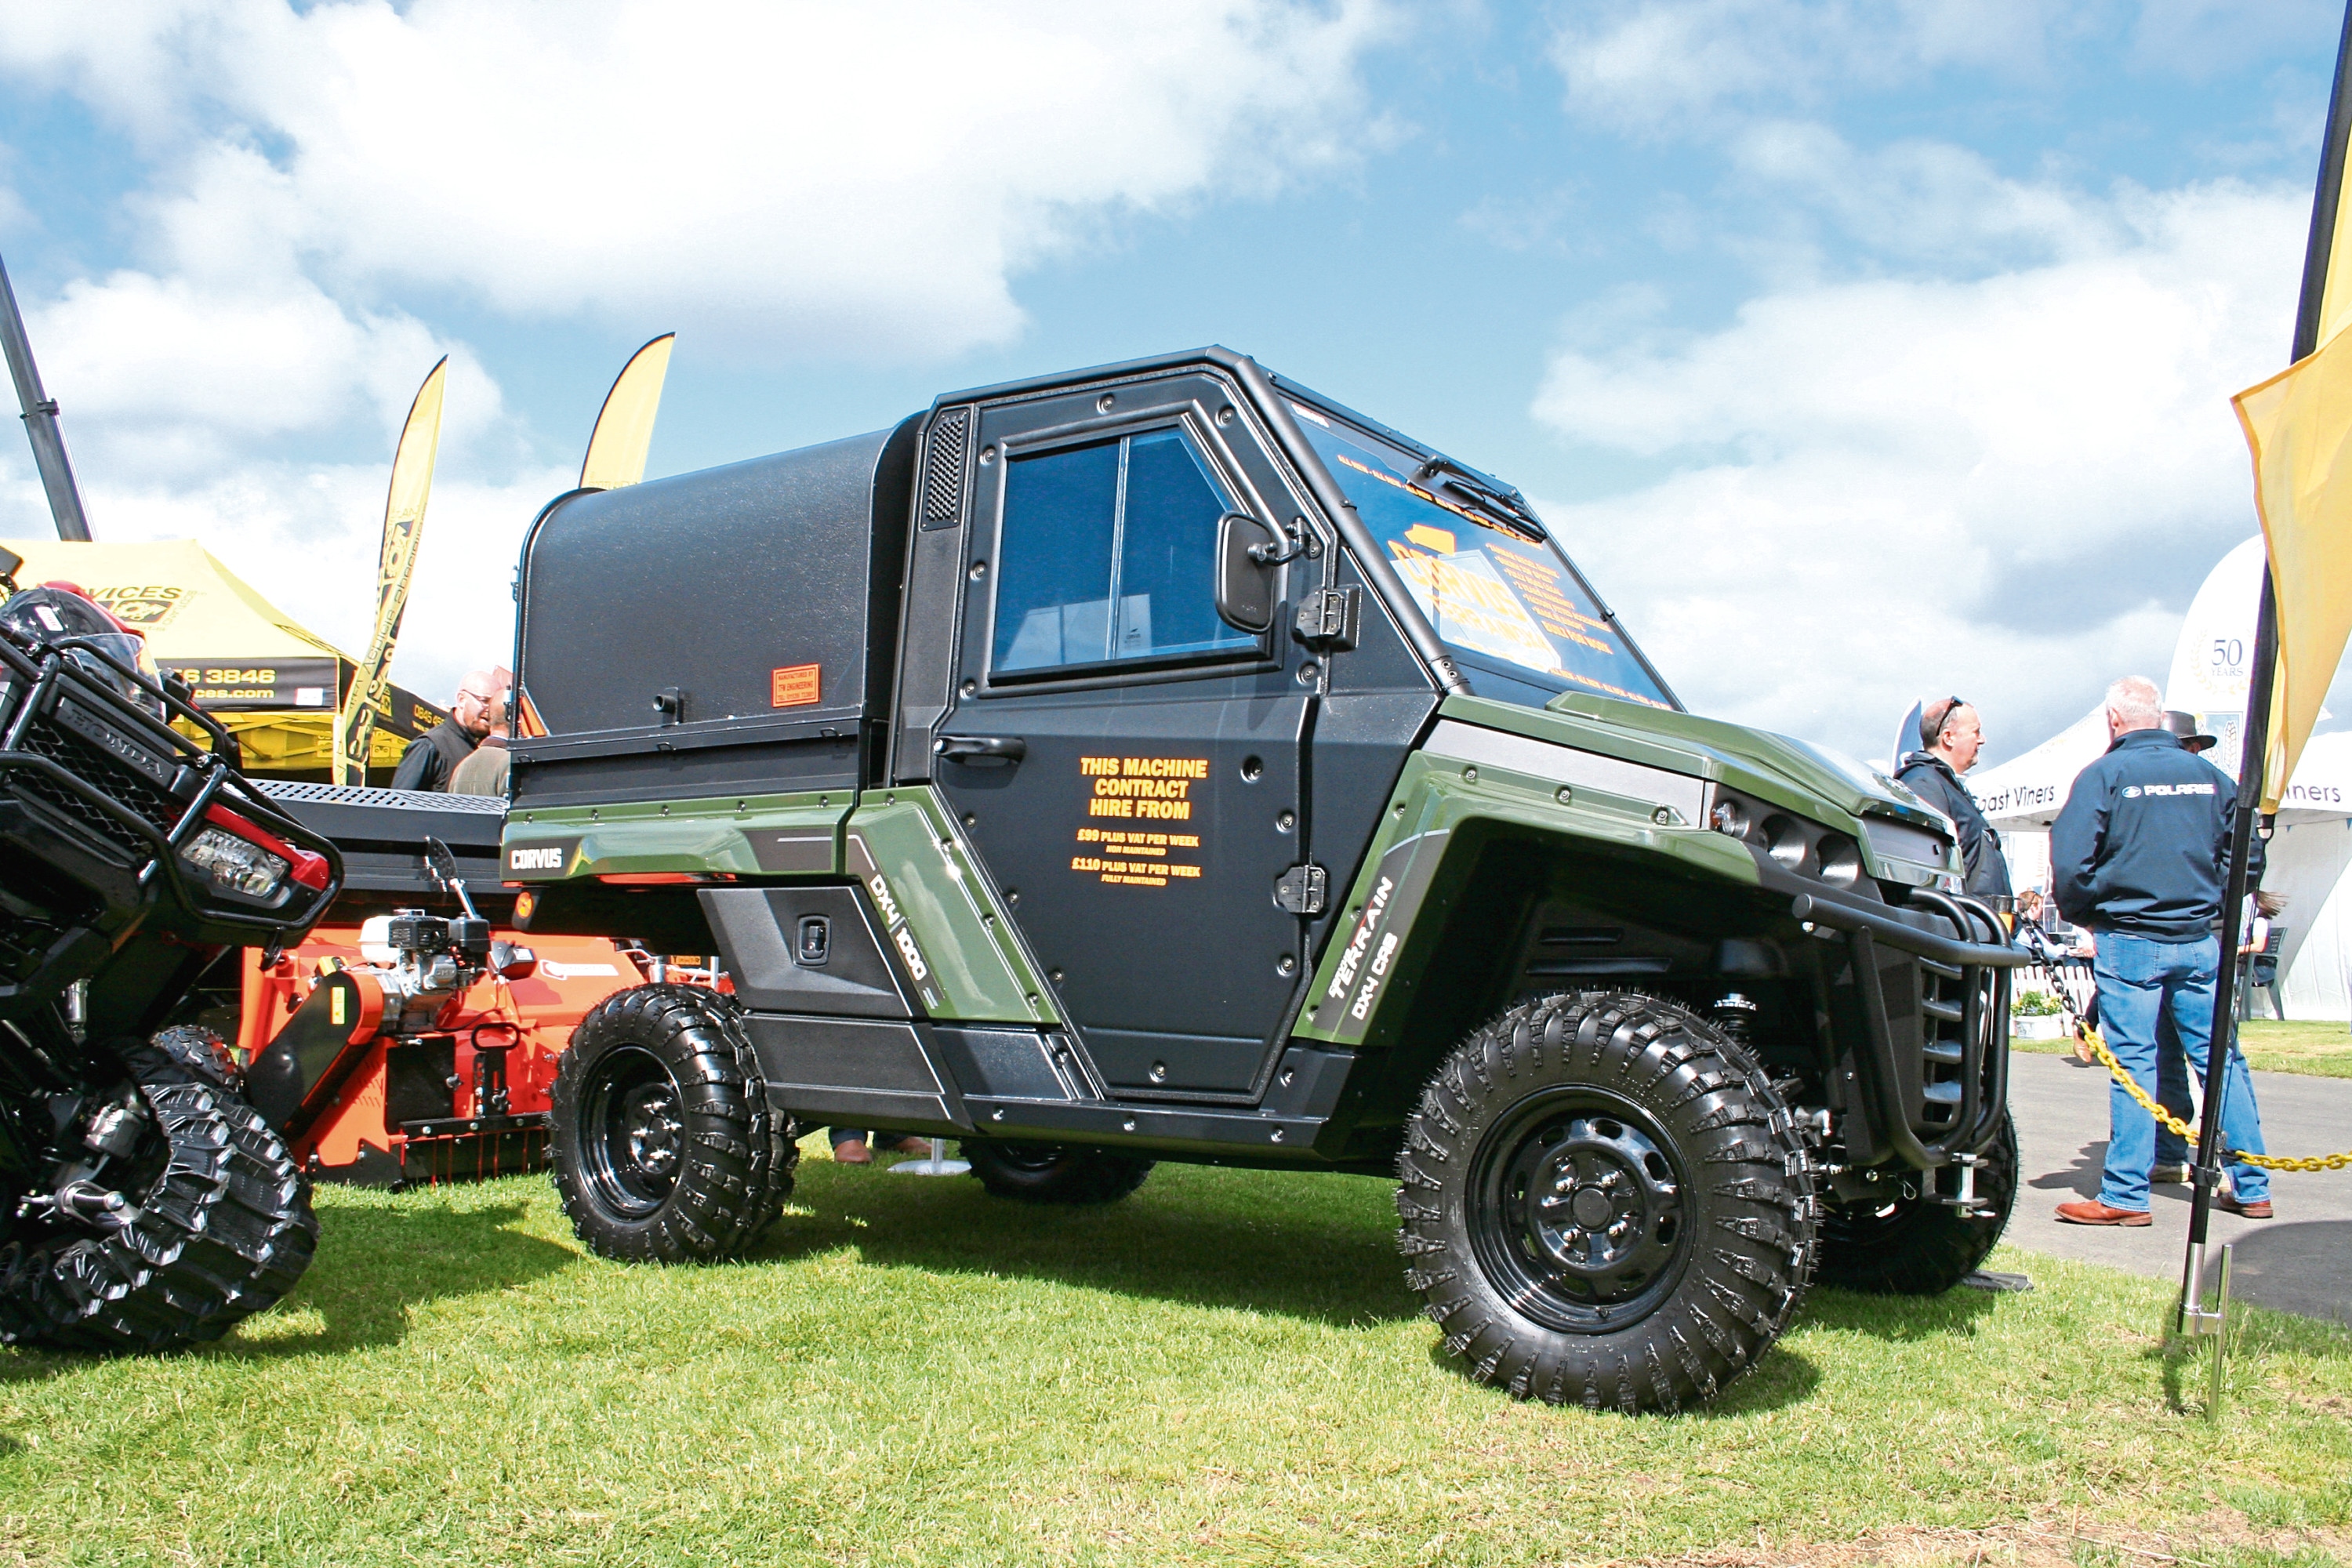 Terrain DX4 side-by-side is a new all-terrain vehicle from Spanish manufacturer Corvus.